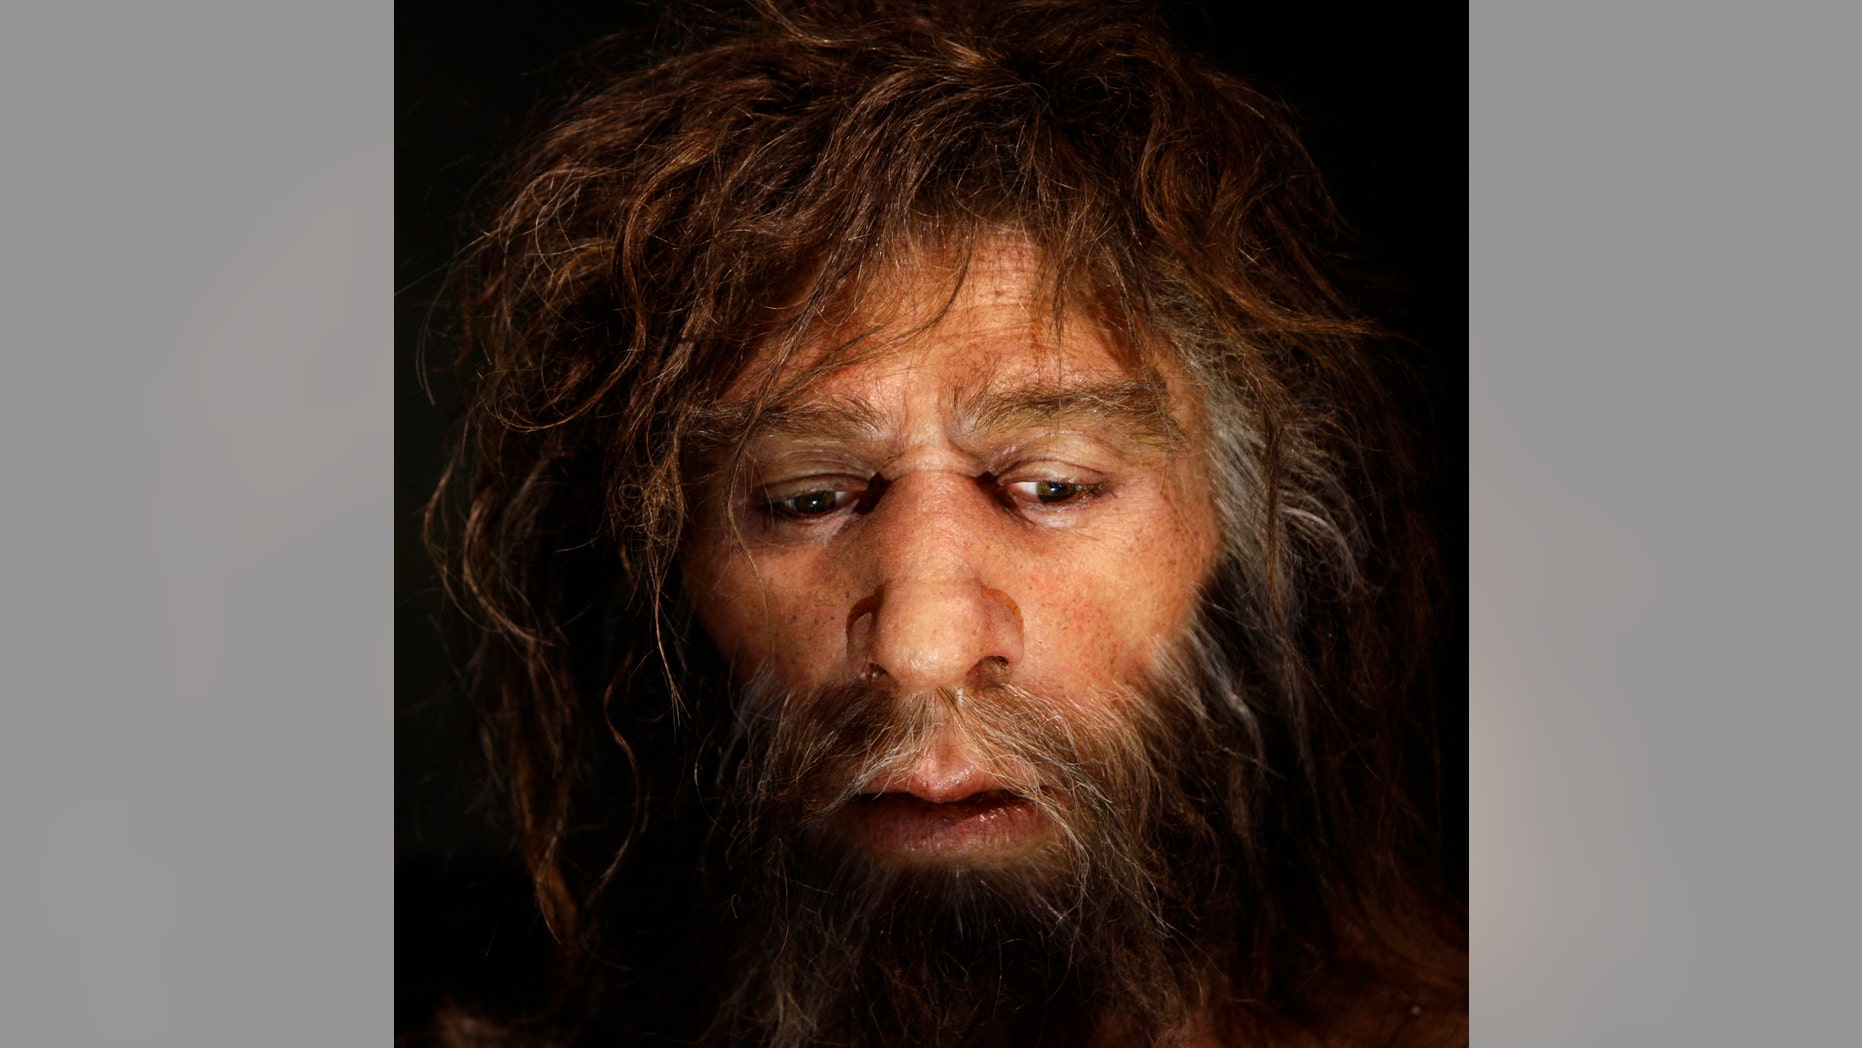 File photo - Hyperrealistic face of a neanderthal male is displayed in a cave in the new Neanderthal Museum in the northern Croatian town of Krapina Feb. 25, 2010.